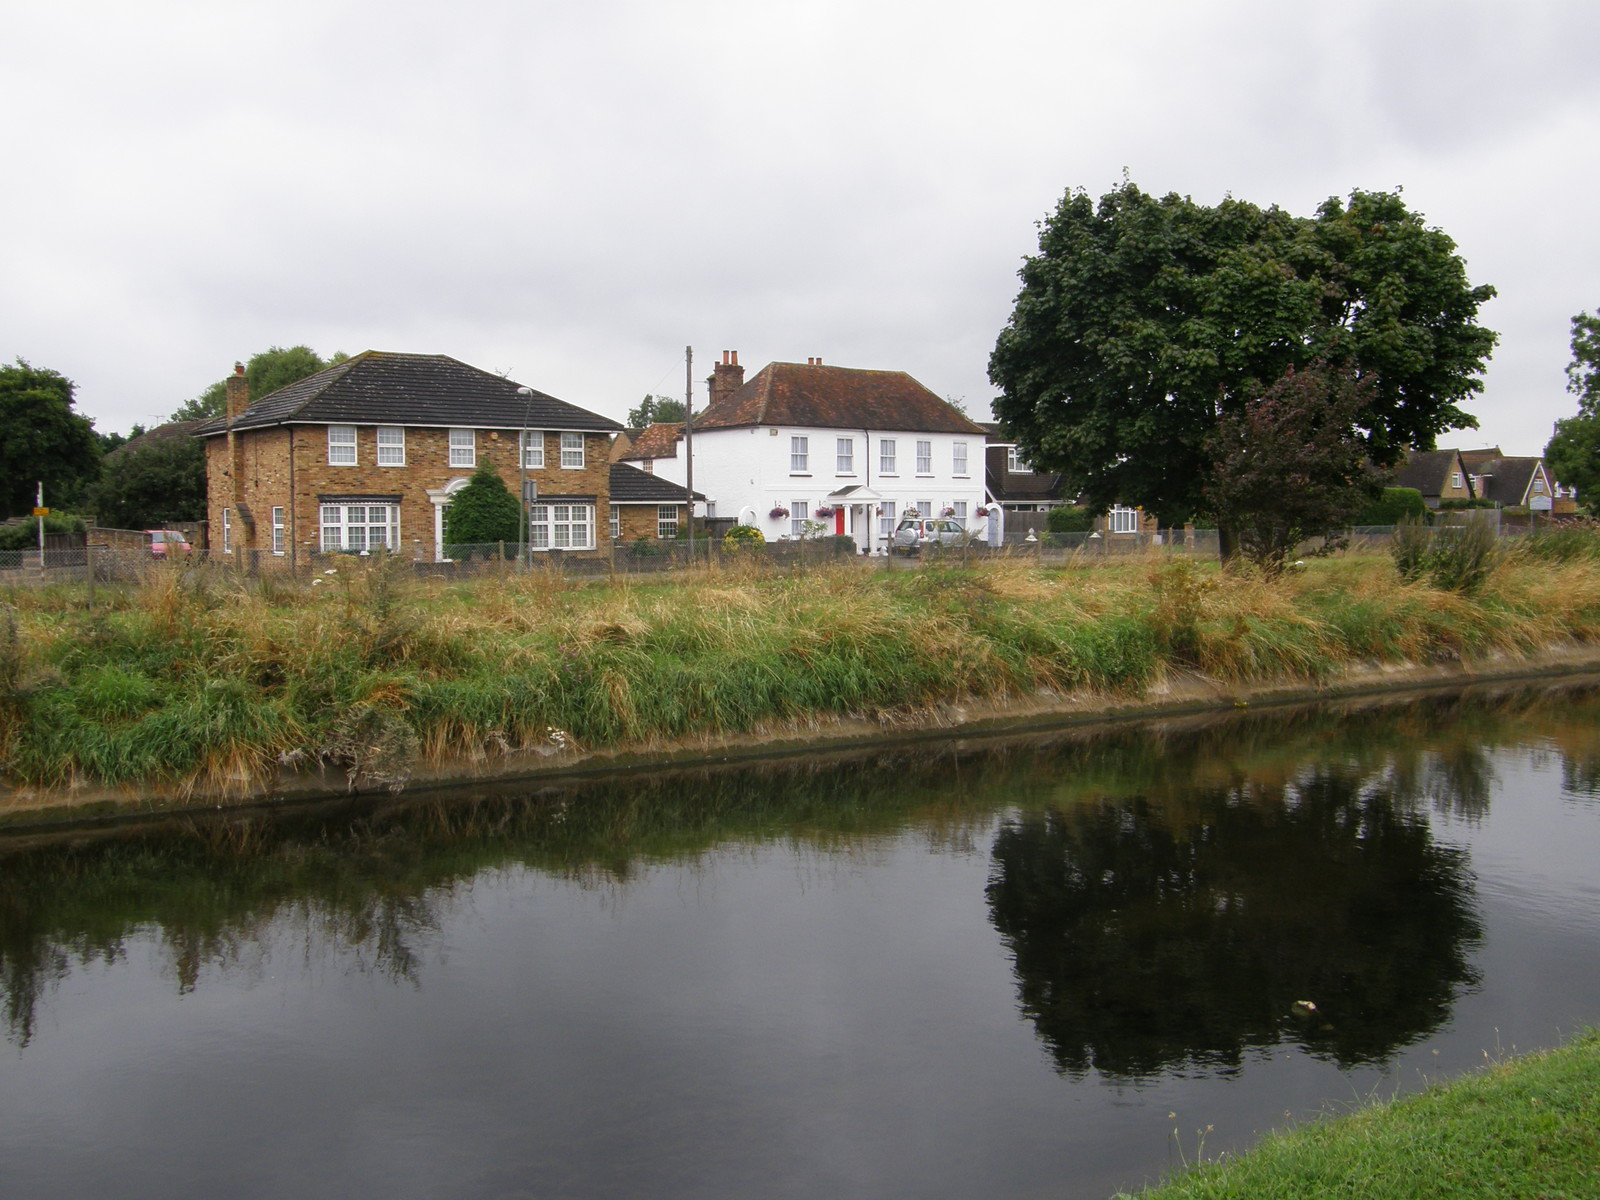 Houses along the Longford River